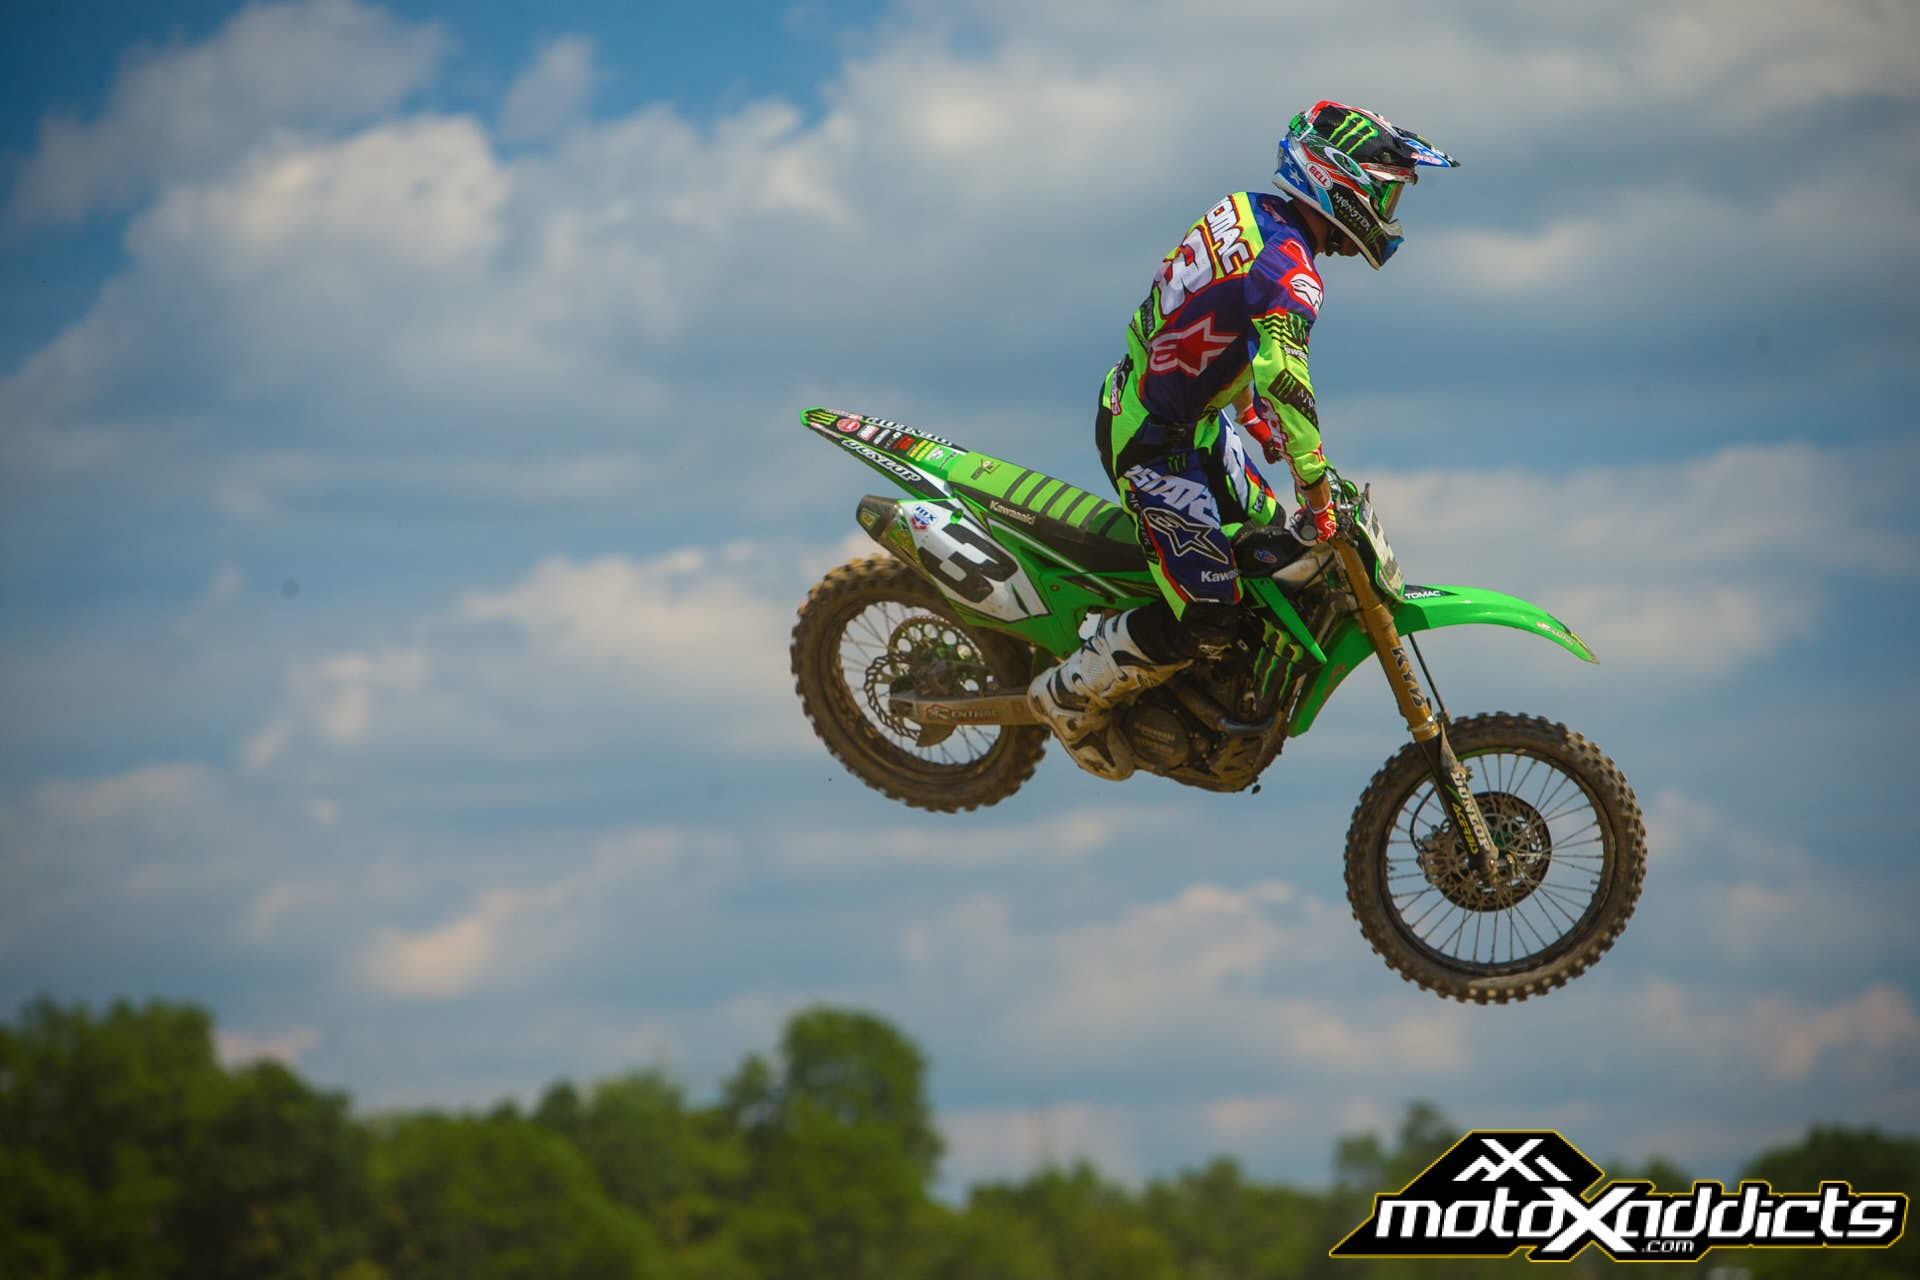 Eli Tomac finally saw the #94, but a mistake gave it an anticlimactic finish.